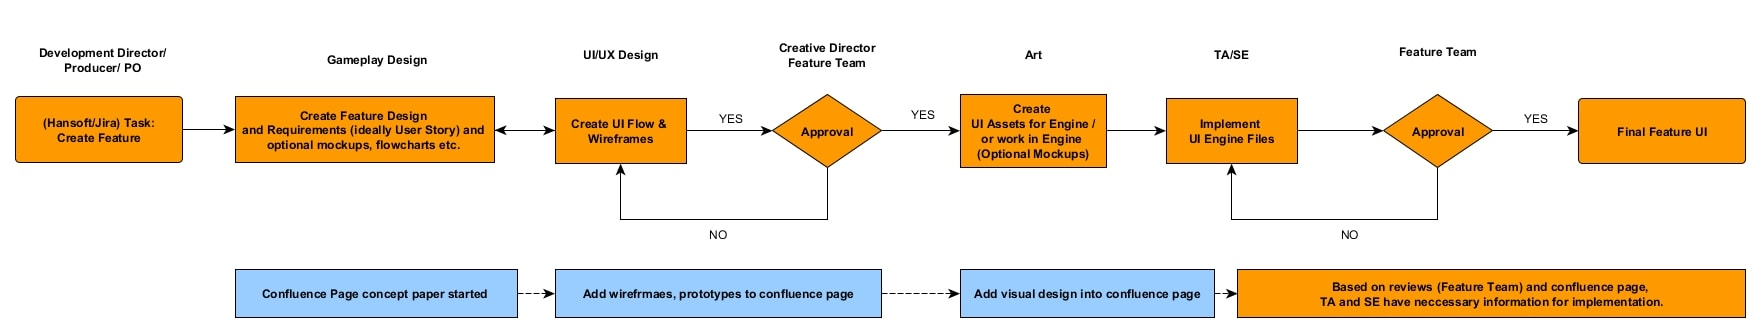 Workflow we used for Feature Design